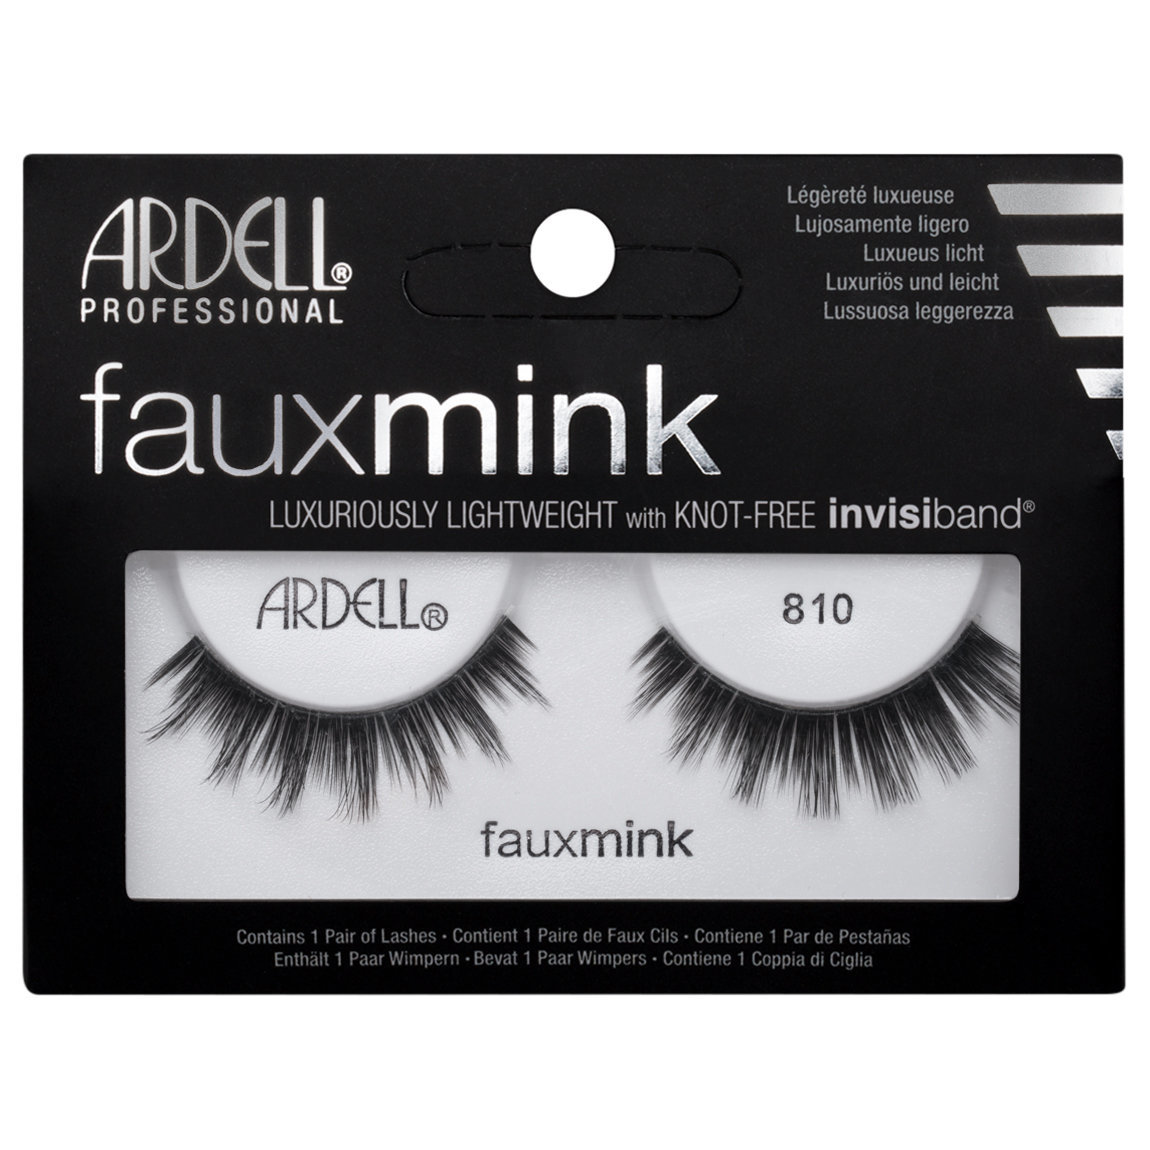 Ardell Faux Mink Lashes 810 Black alternative view 1.